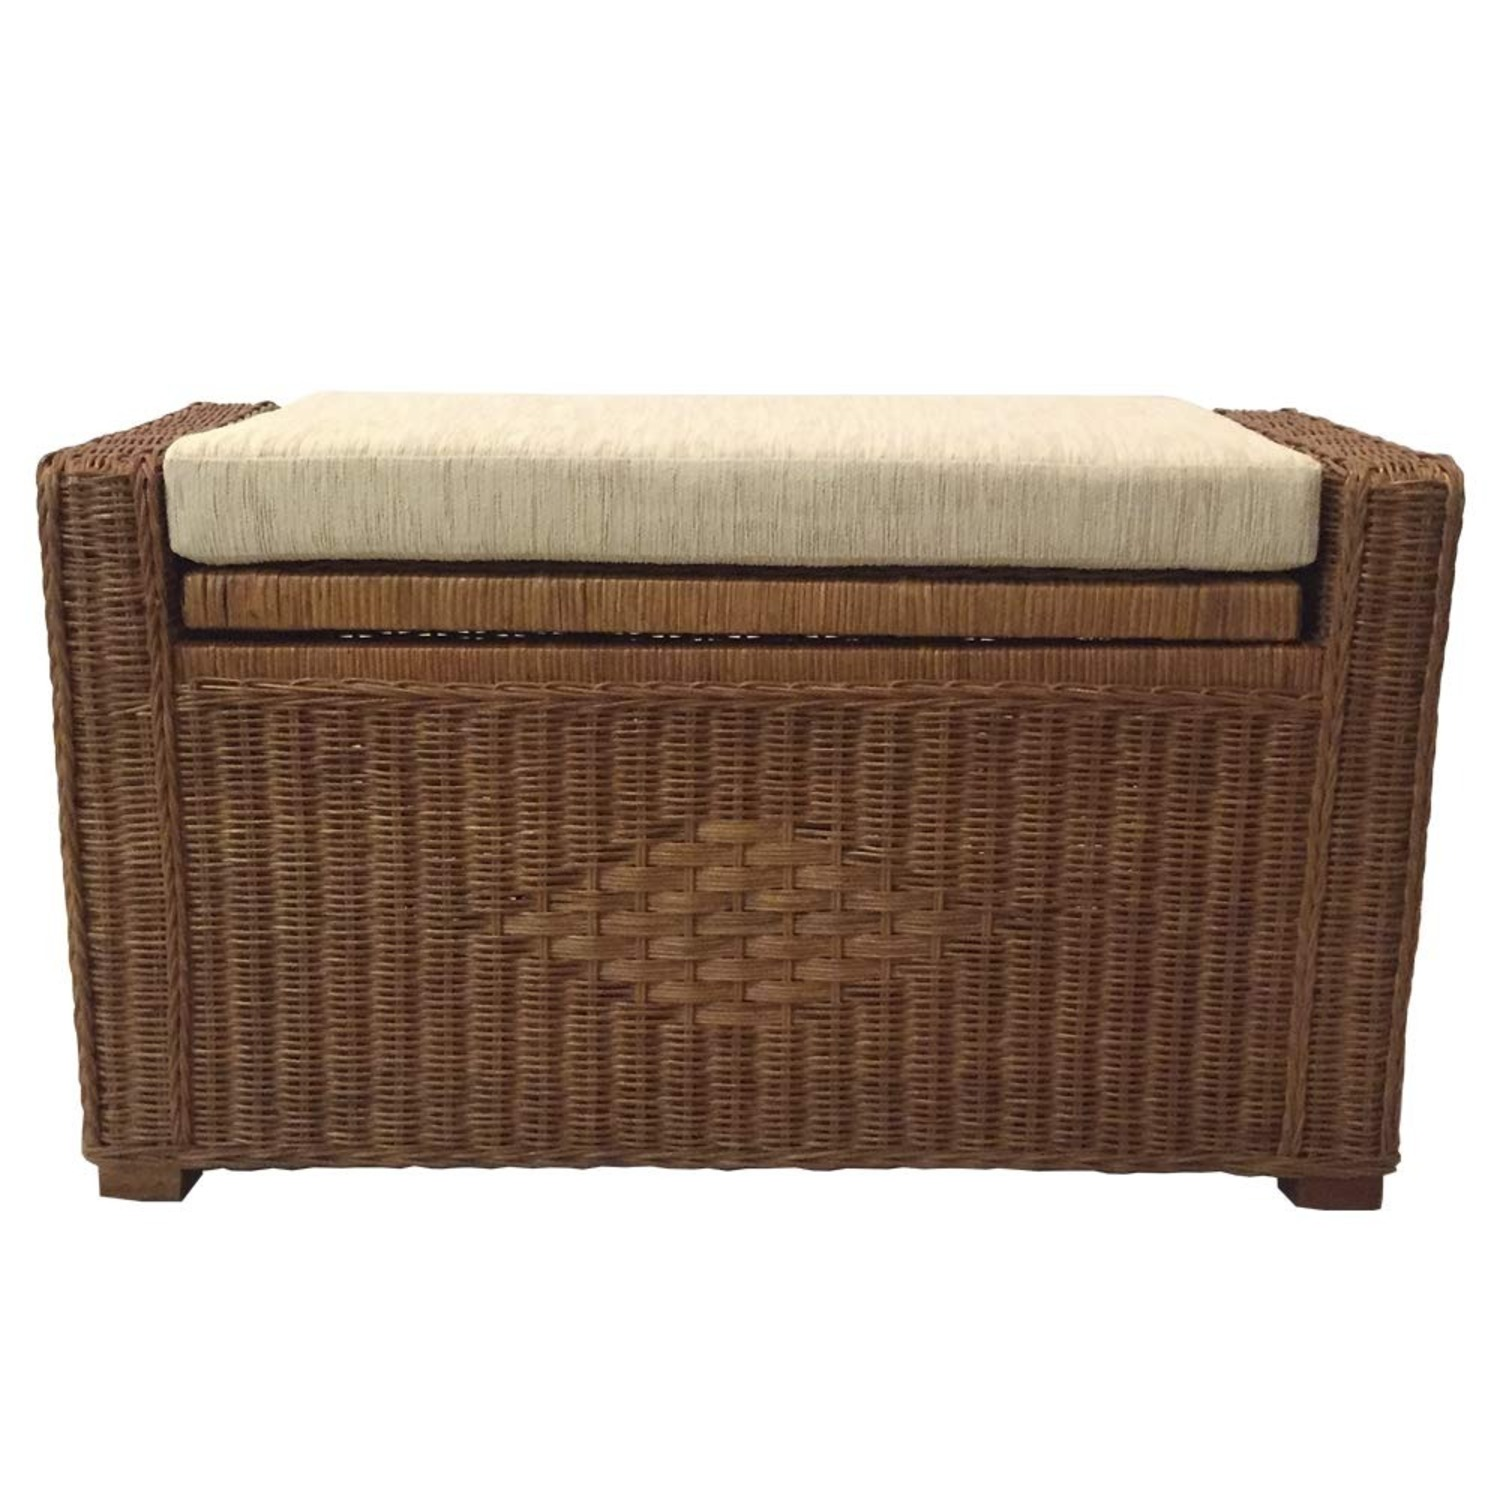 Adam Light Brown Rattan Chest Storage Ottoman - image-0